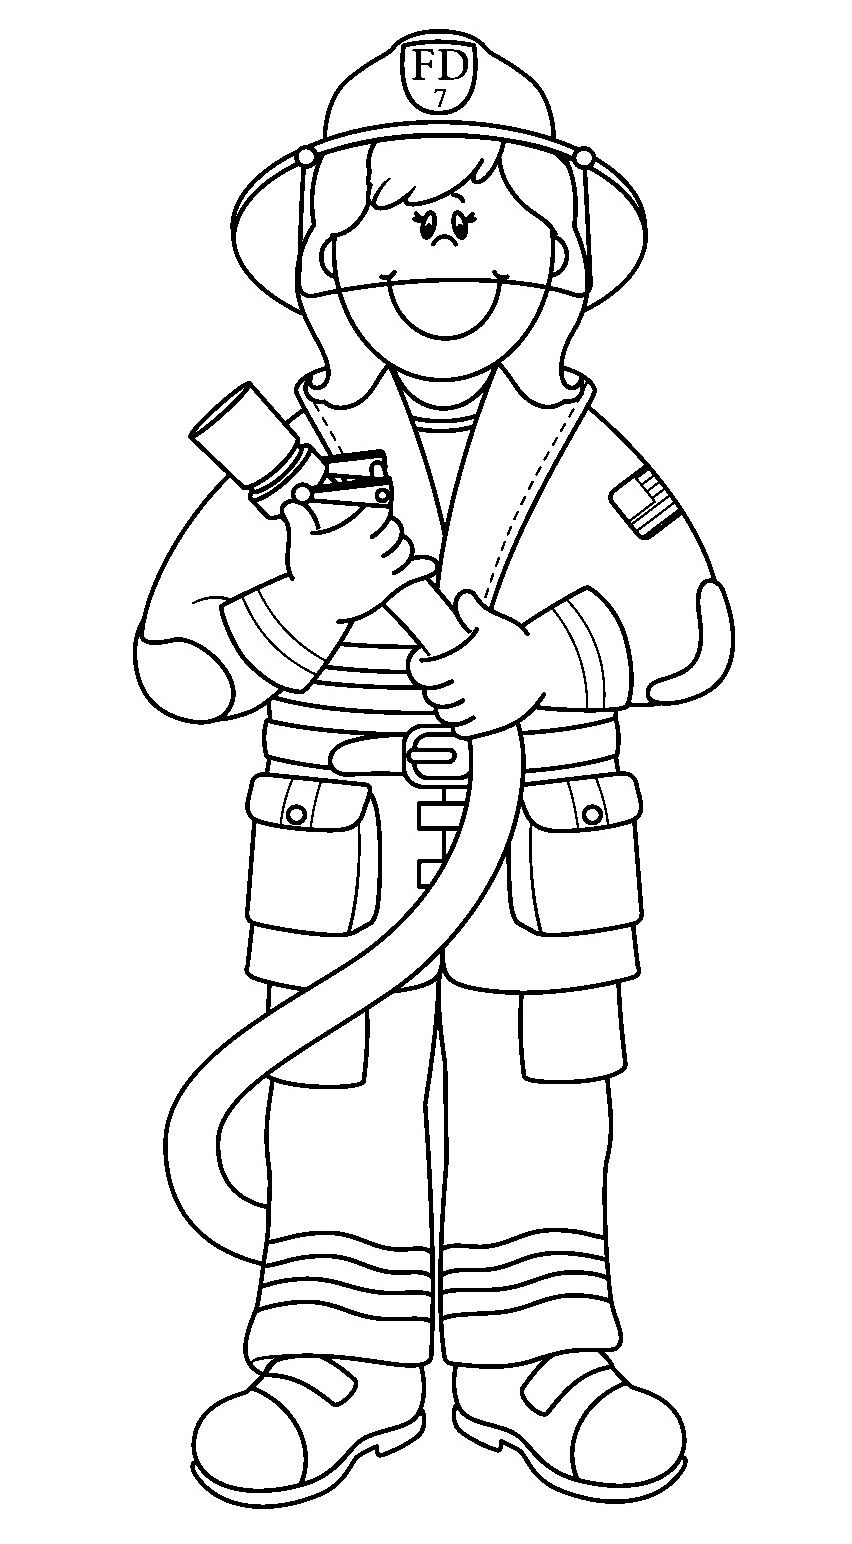 Firefighter Coloring Pages for Preschoolers  Printable 9k - To print for your project